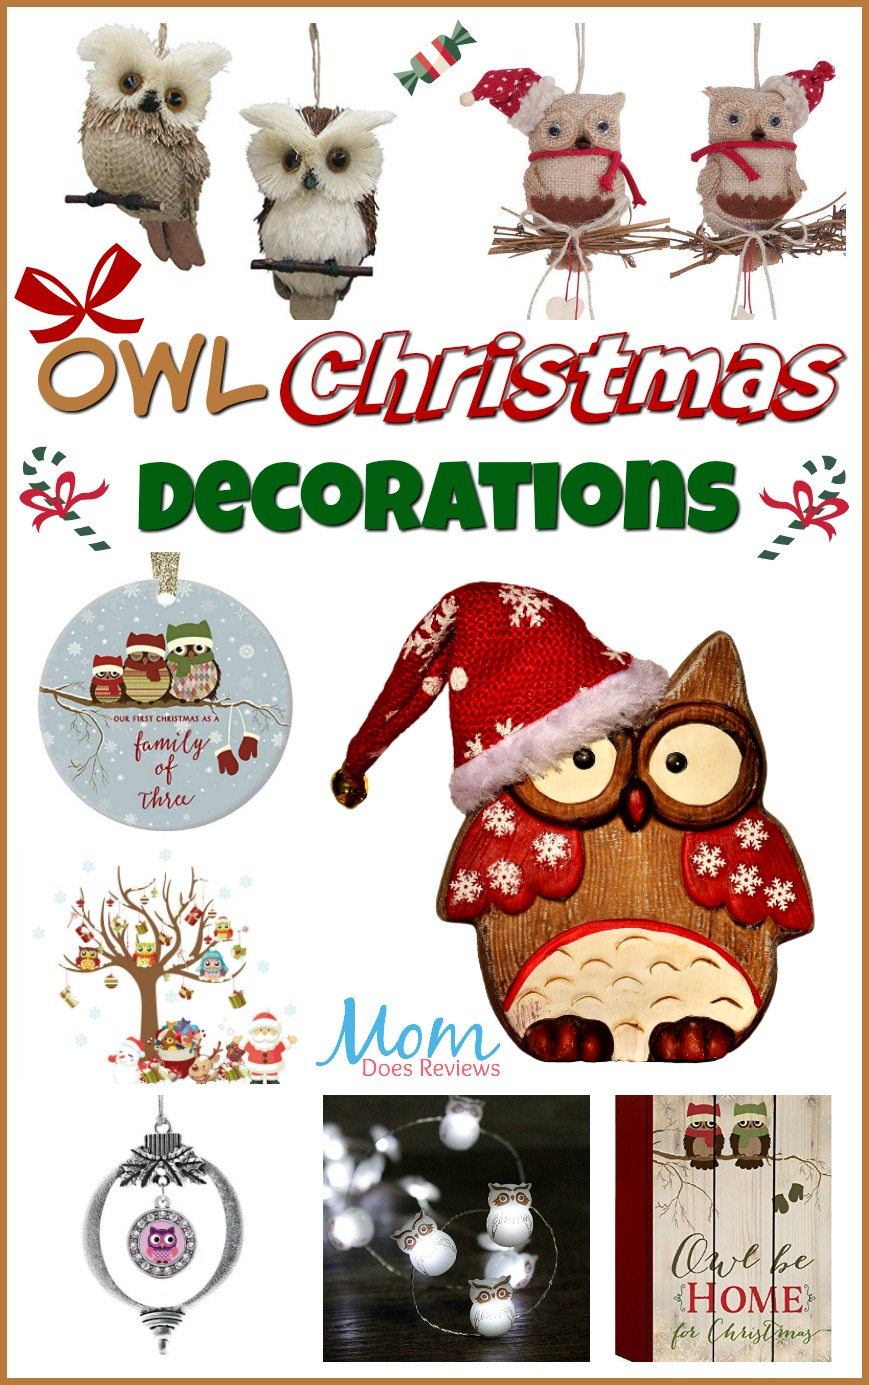 Owl Christmas Decorations #MEGAChristmas18 #owls #christmas #ornaments #stockings